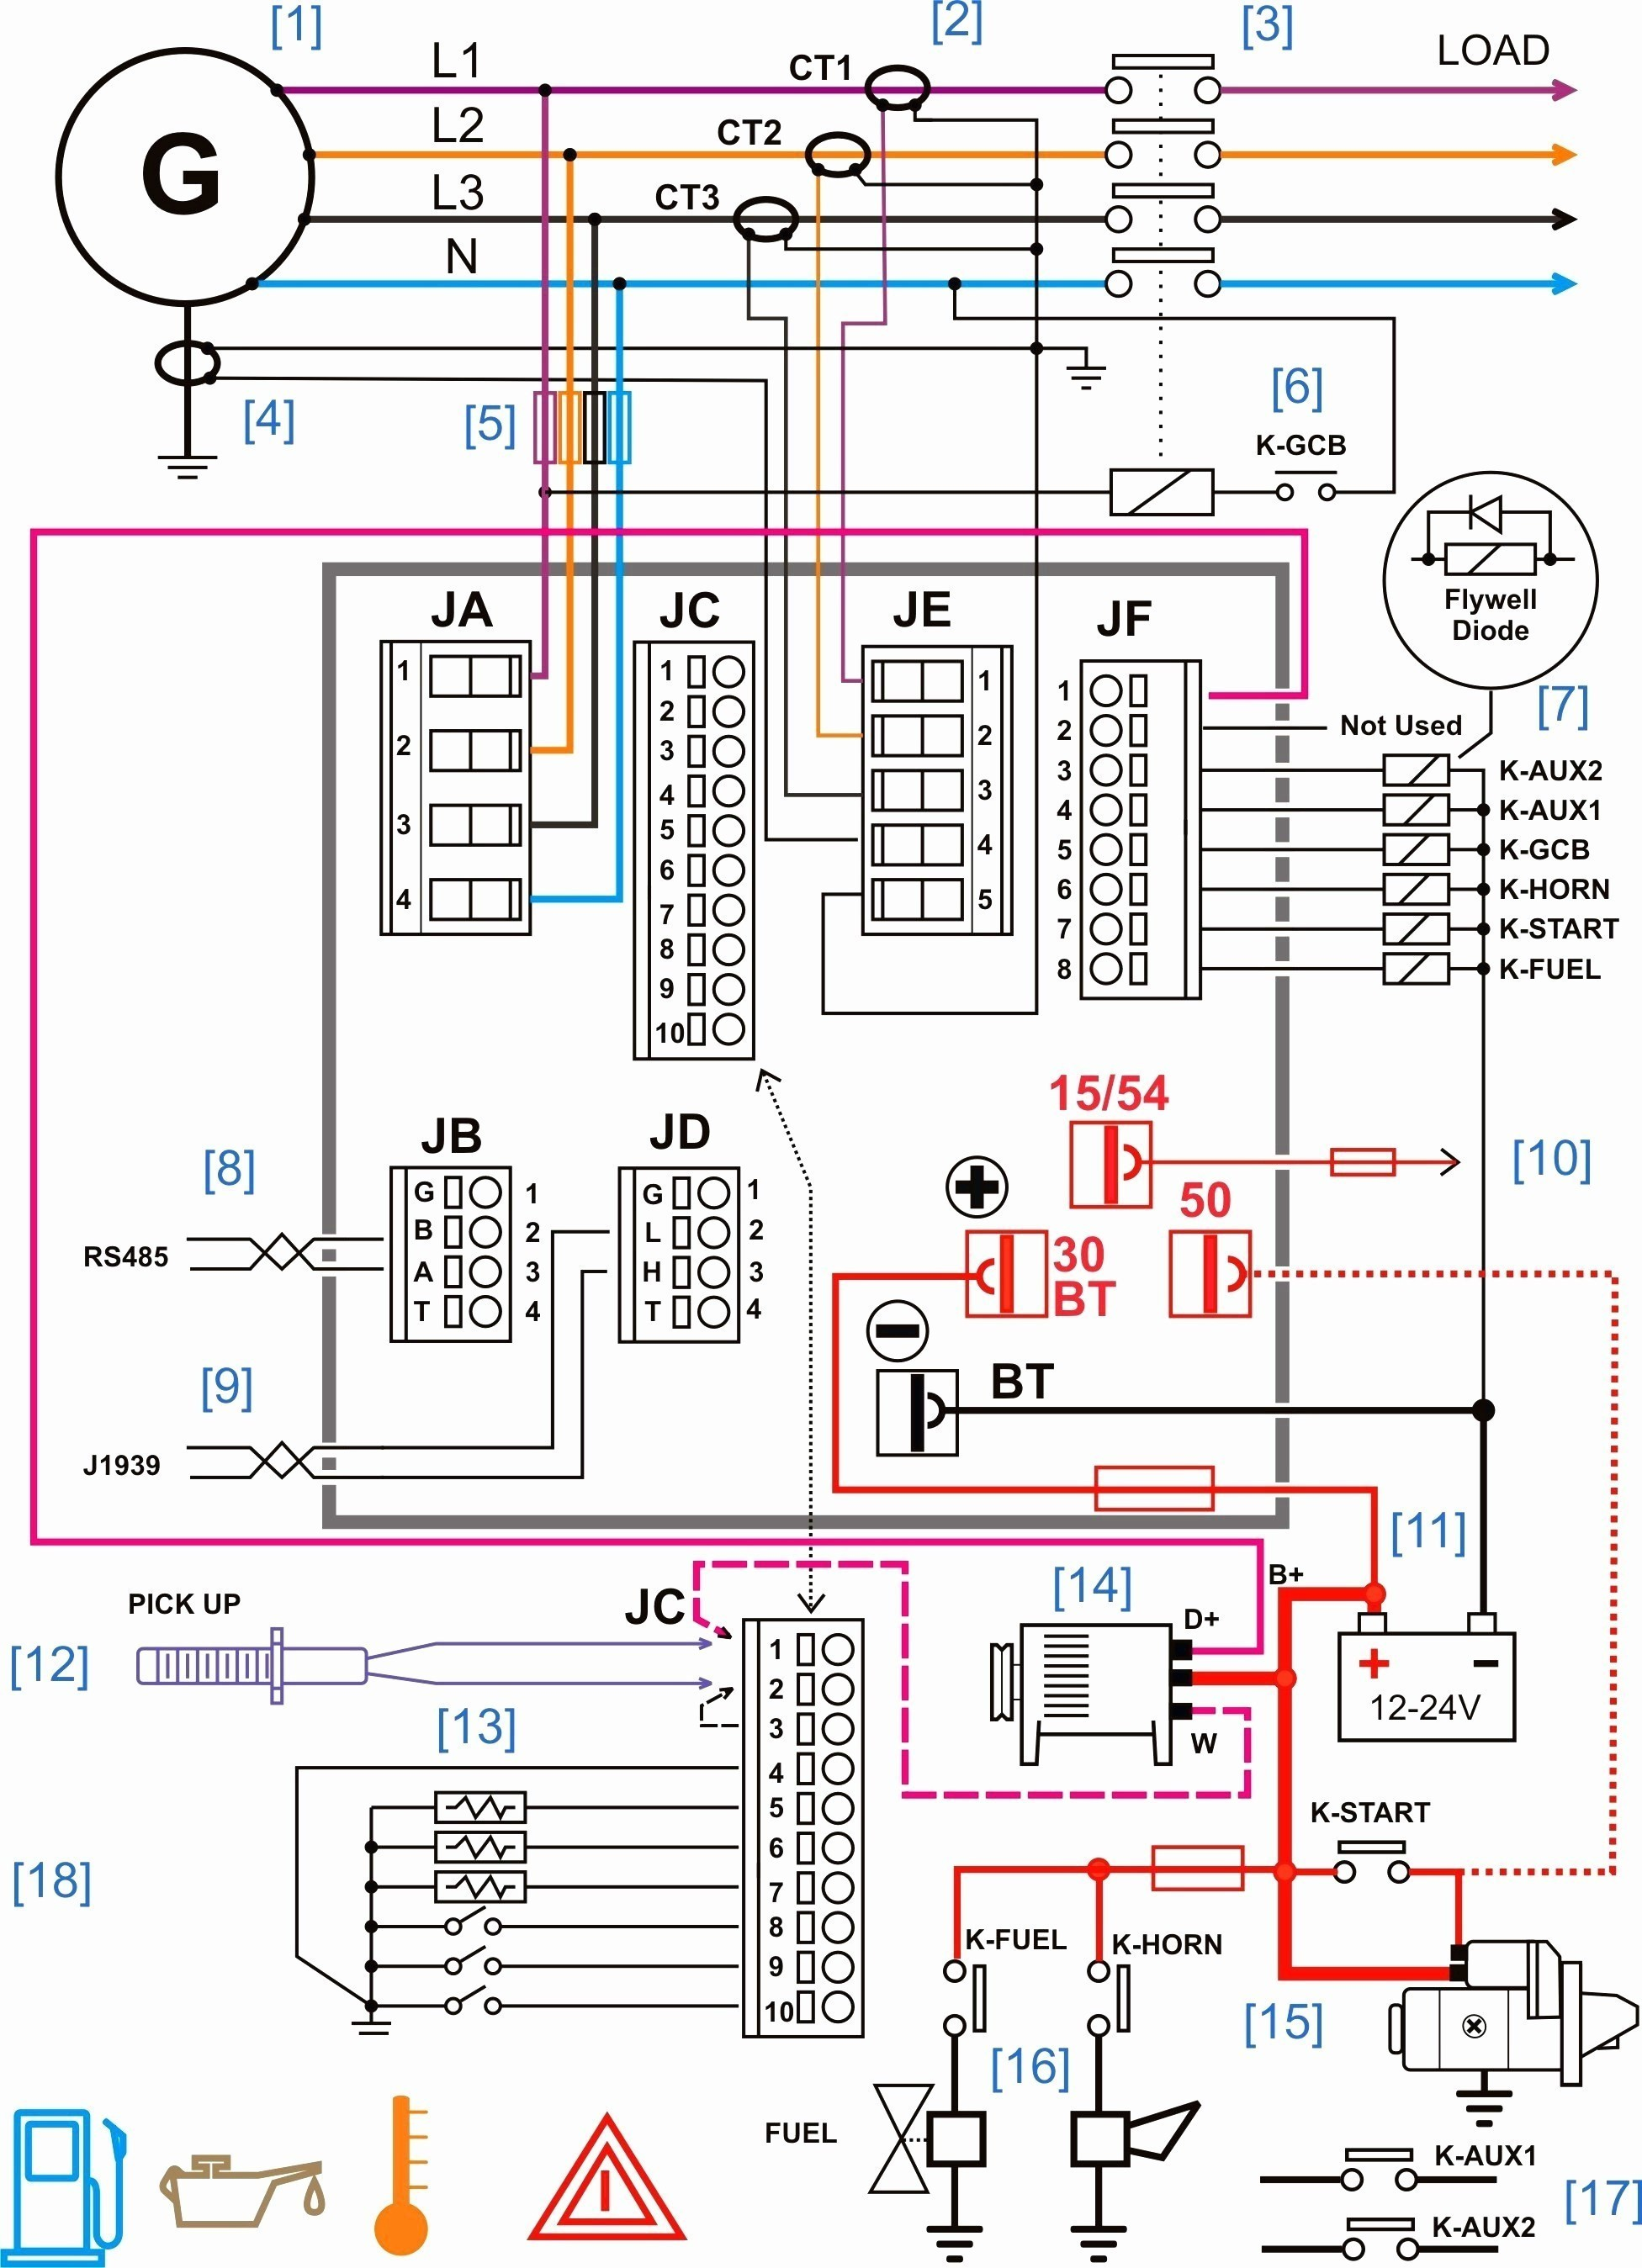 Diagram Of Car Lights Wiring Diagram Book Best Wiring Harness Diagram Book Car Stereo Of Diagram Of Car Lights